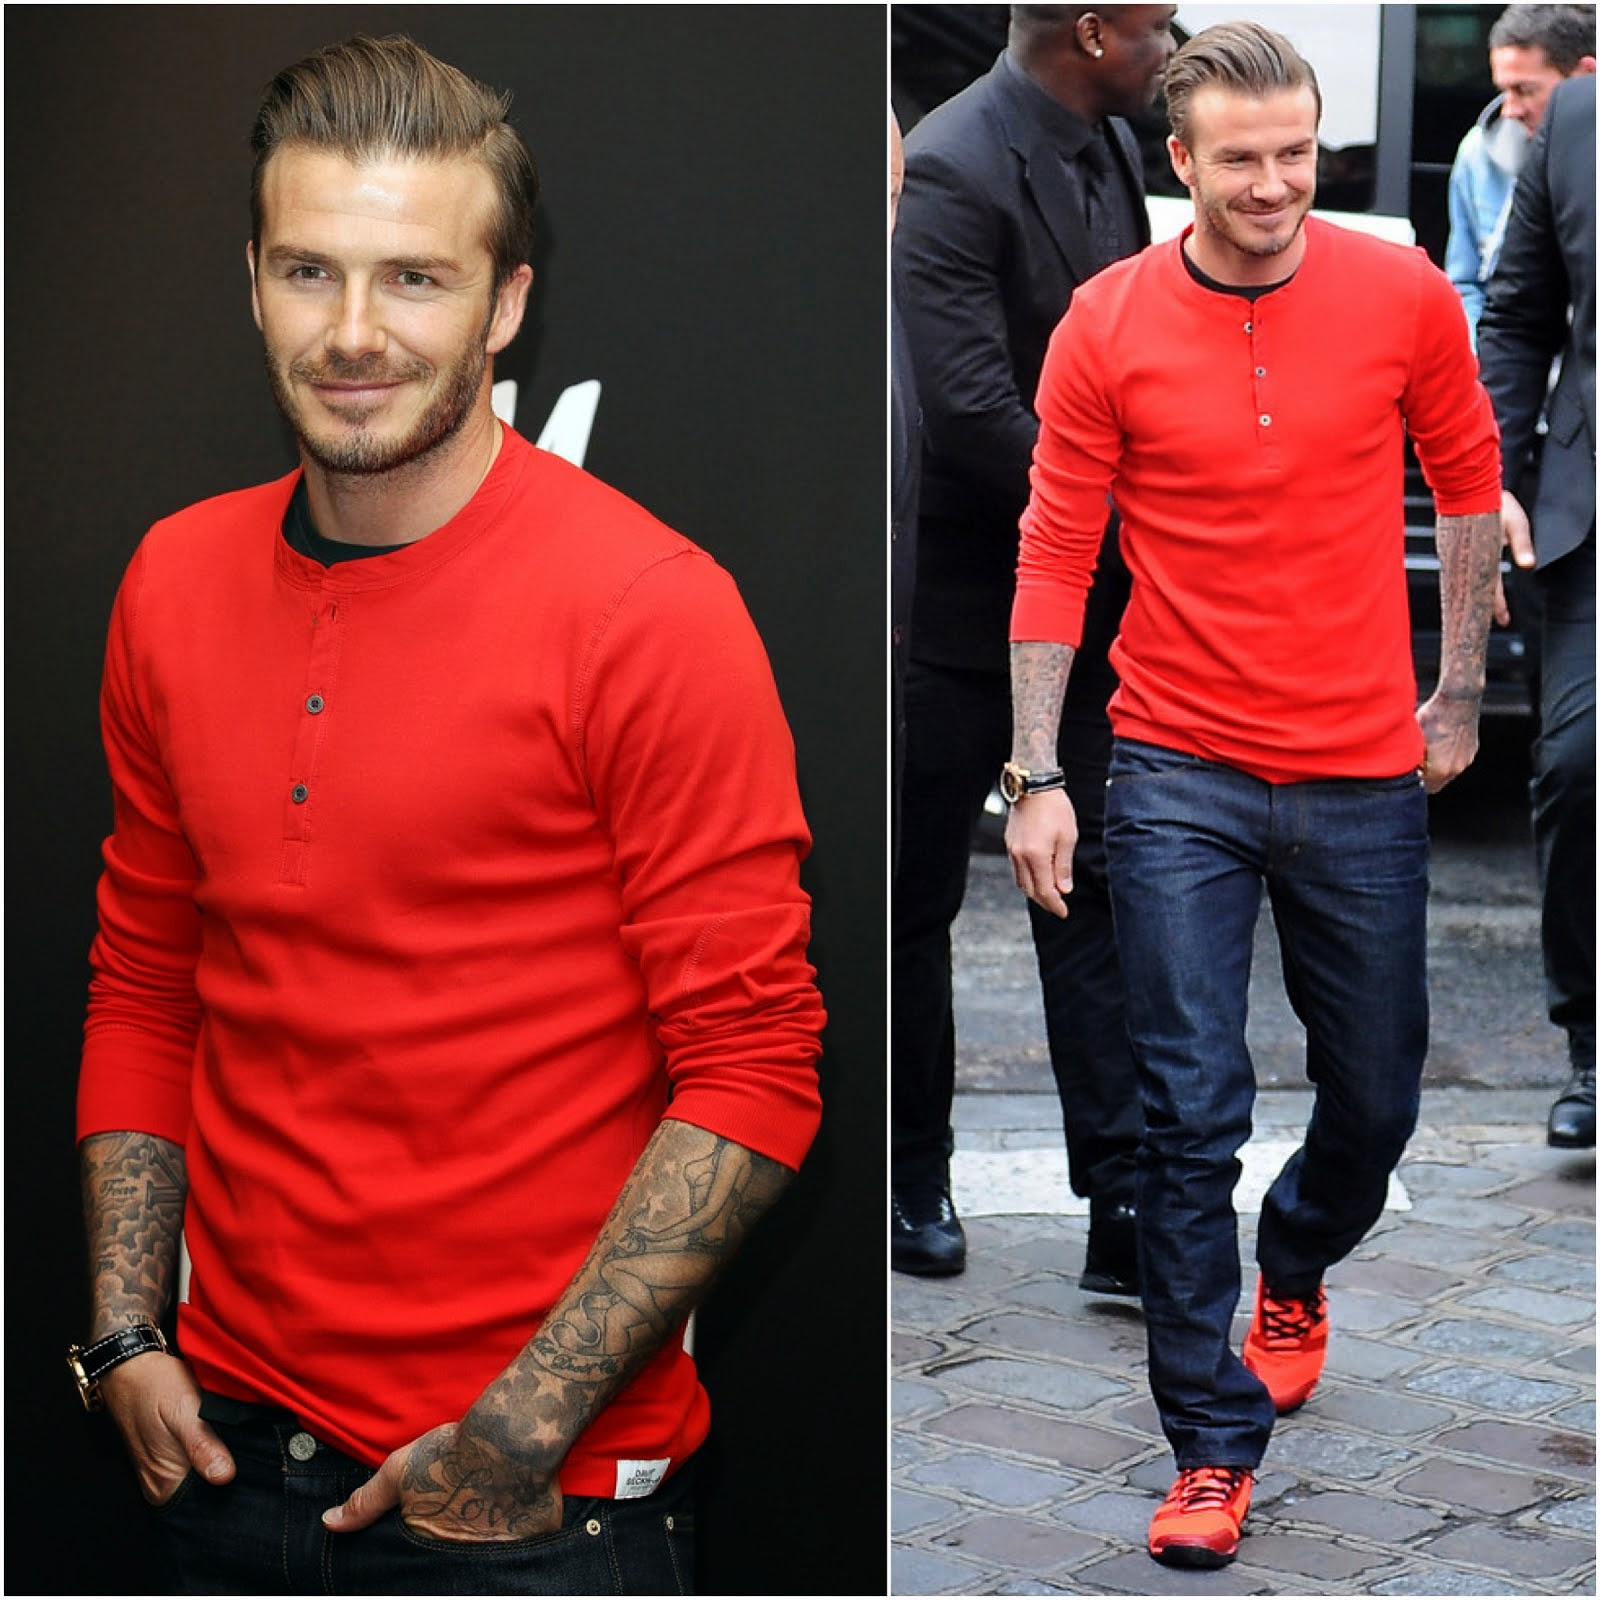 00O00 Menswear Blog: David Beckham in H&M - Paris store appearance